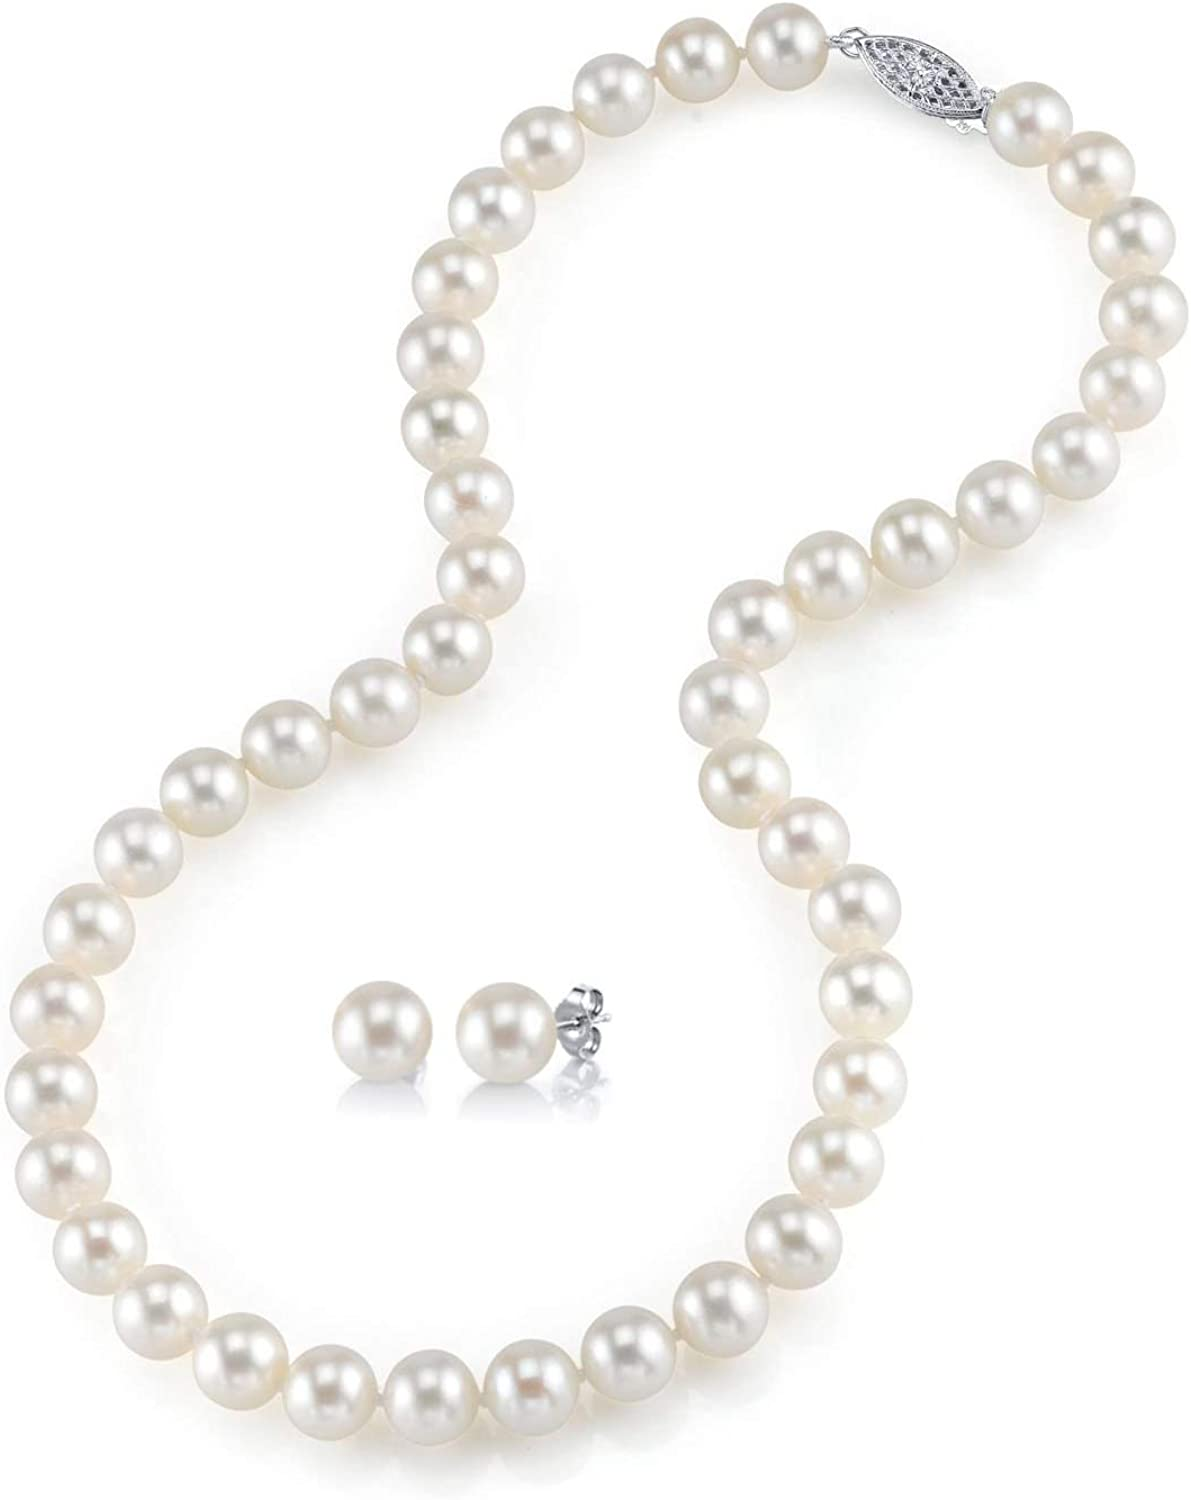 THE PEARL SOURCE 14K Gold Round White Freshwater Cultured Pearl Necklace & Earrings Set in 17